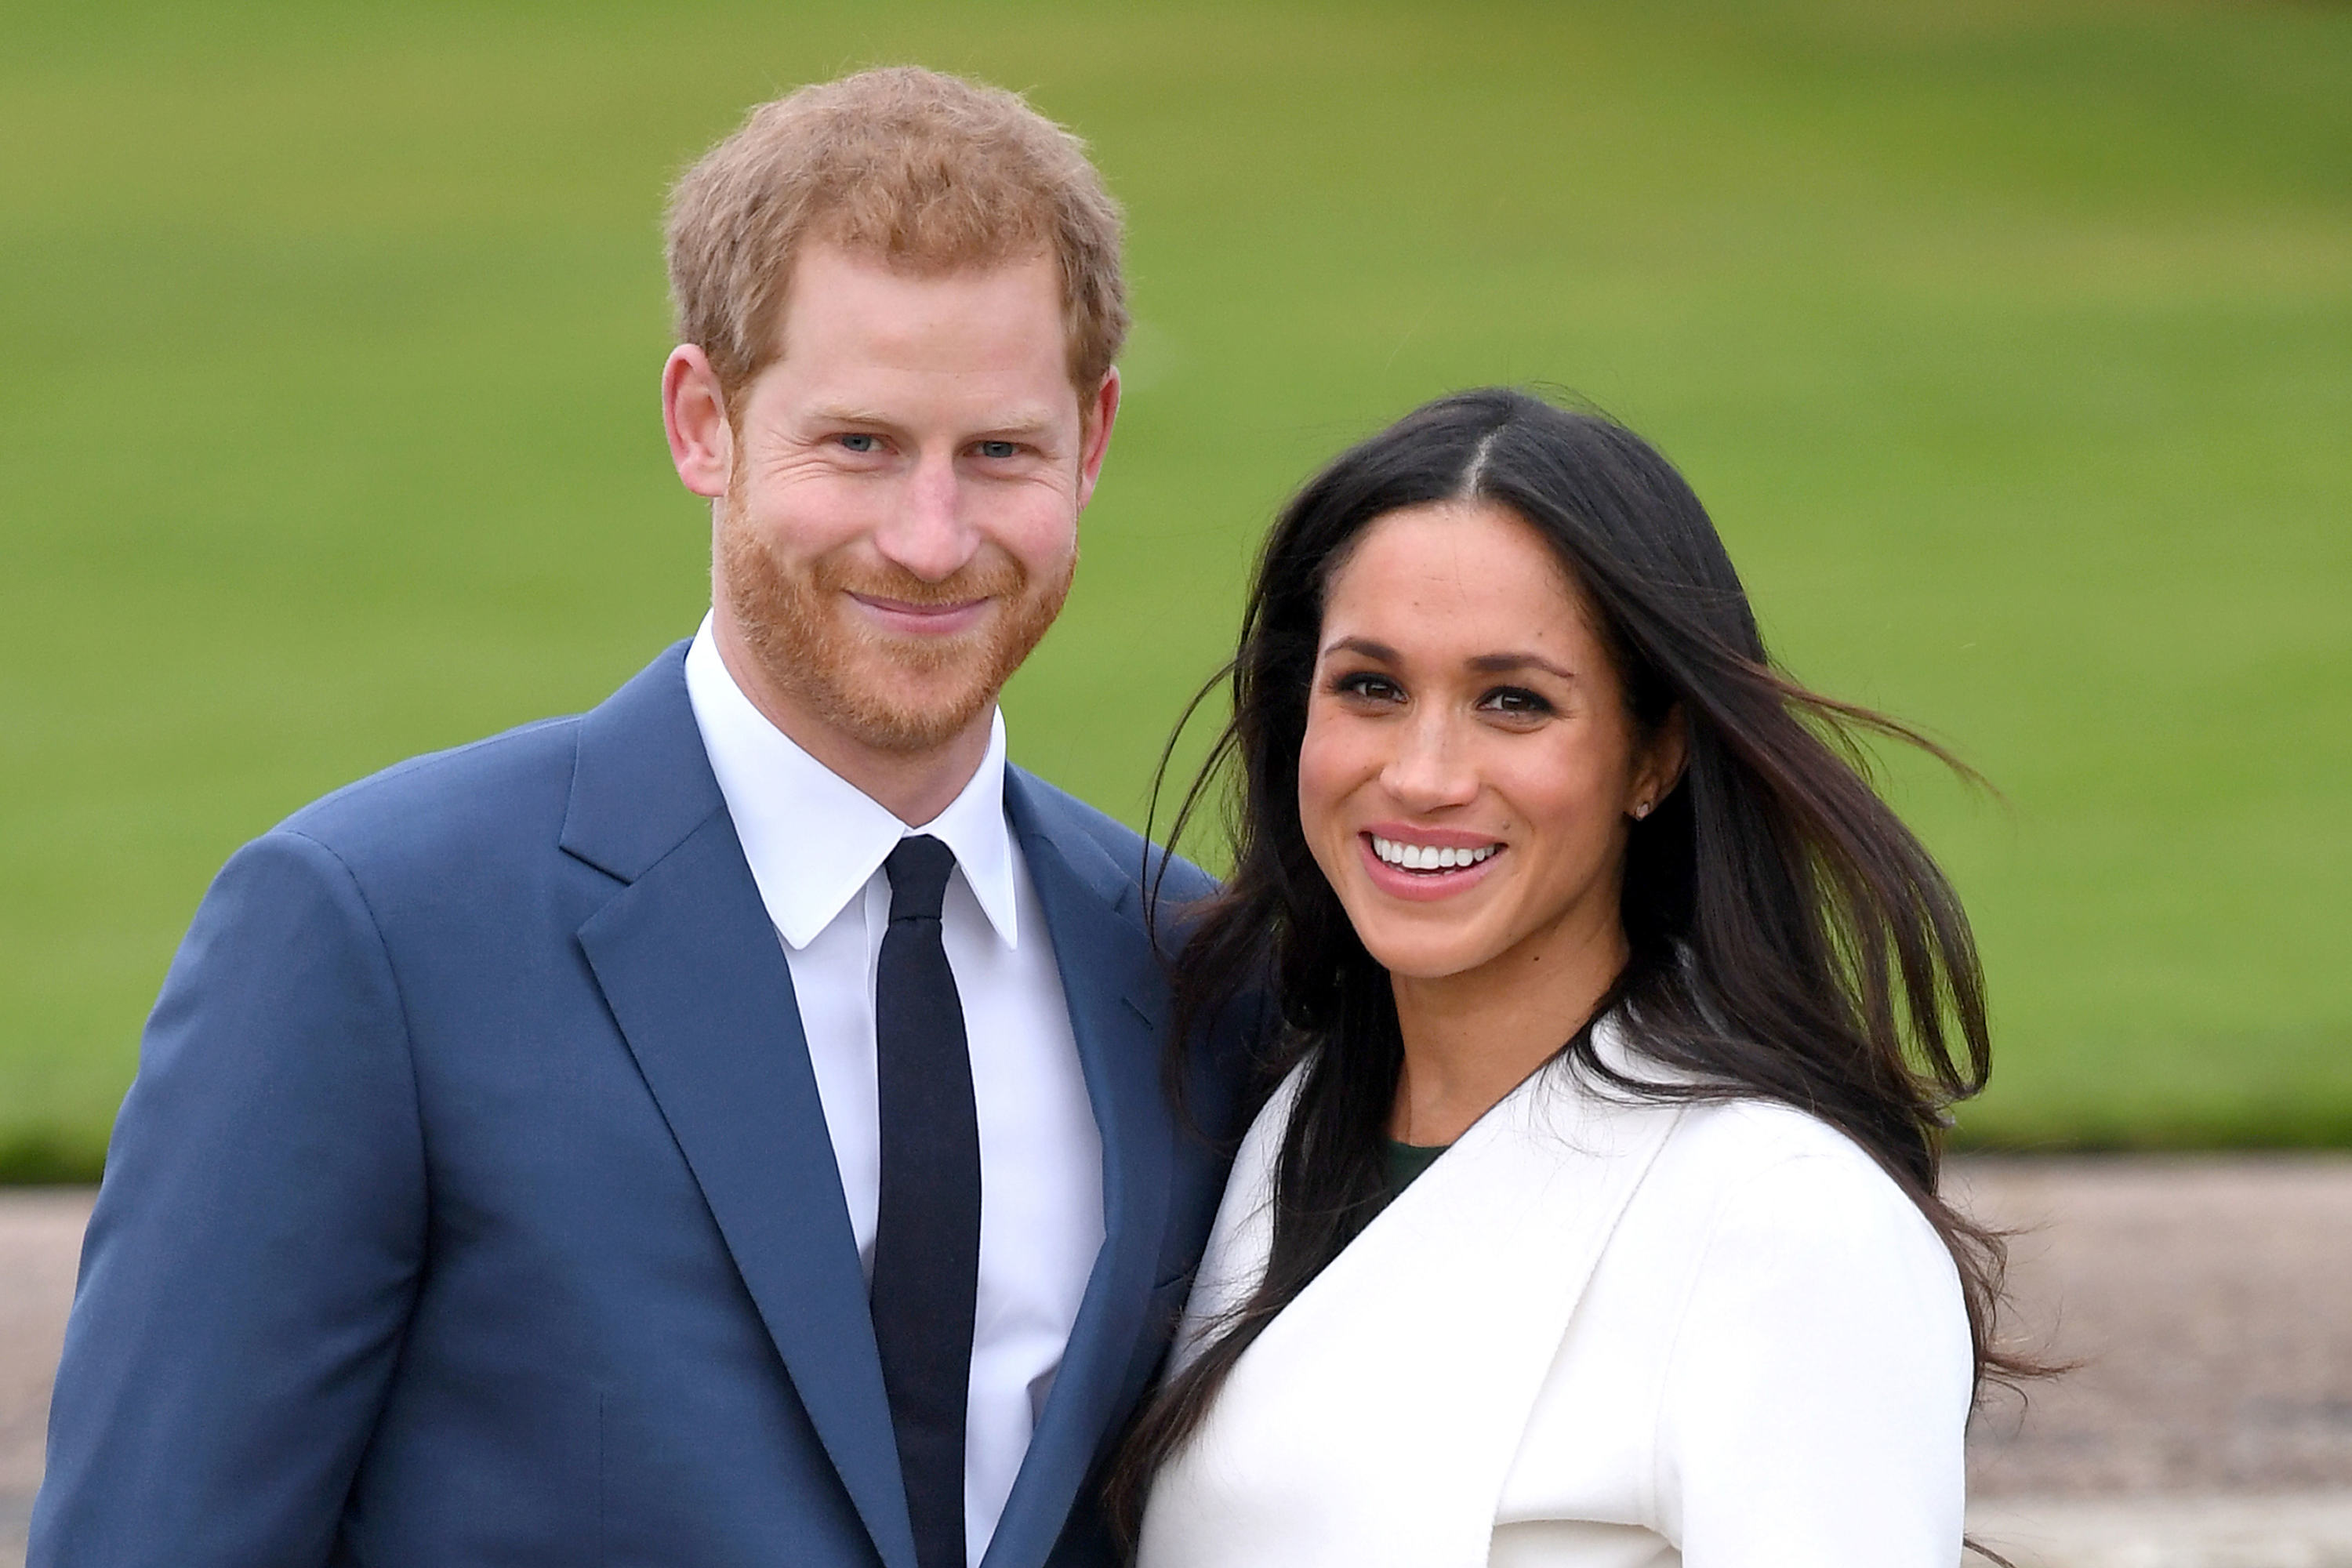 Meghan and Harry sign deal with P&G, Microsoft is Cannes Creative Marketer of the Year